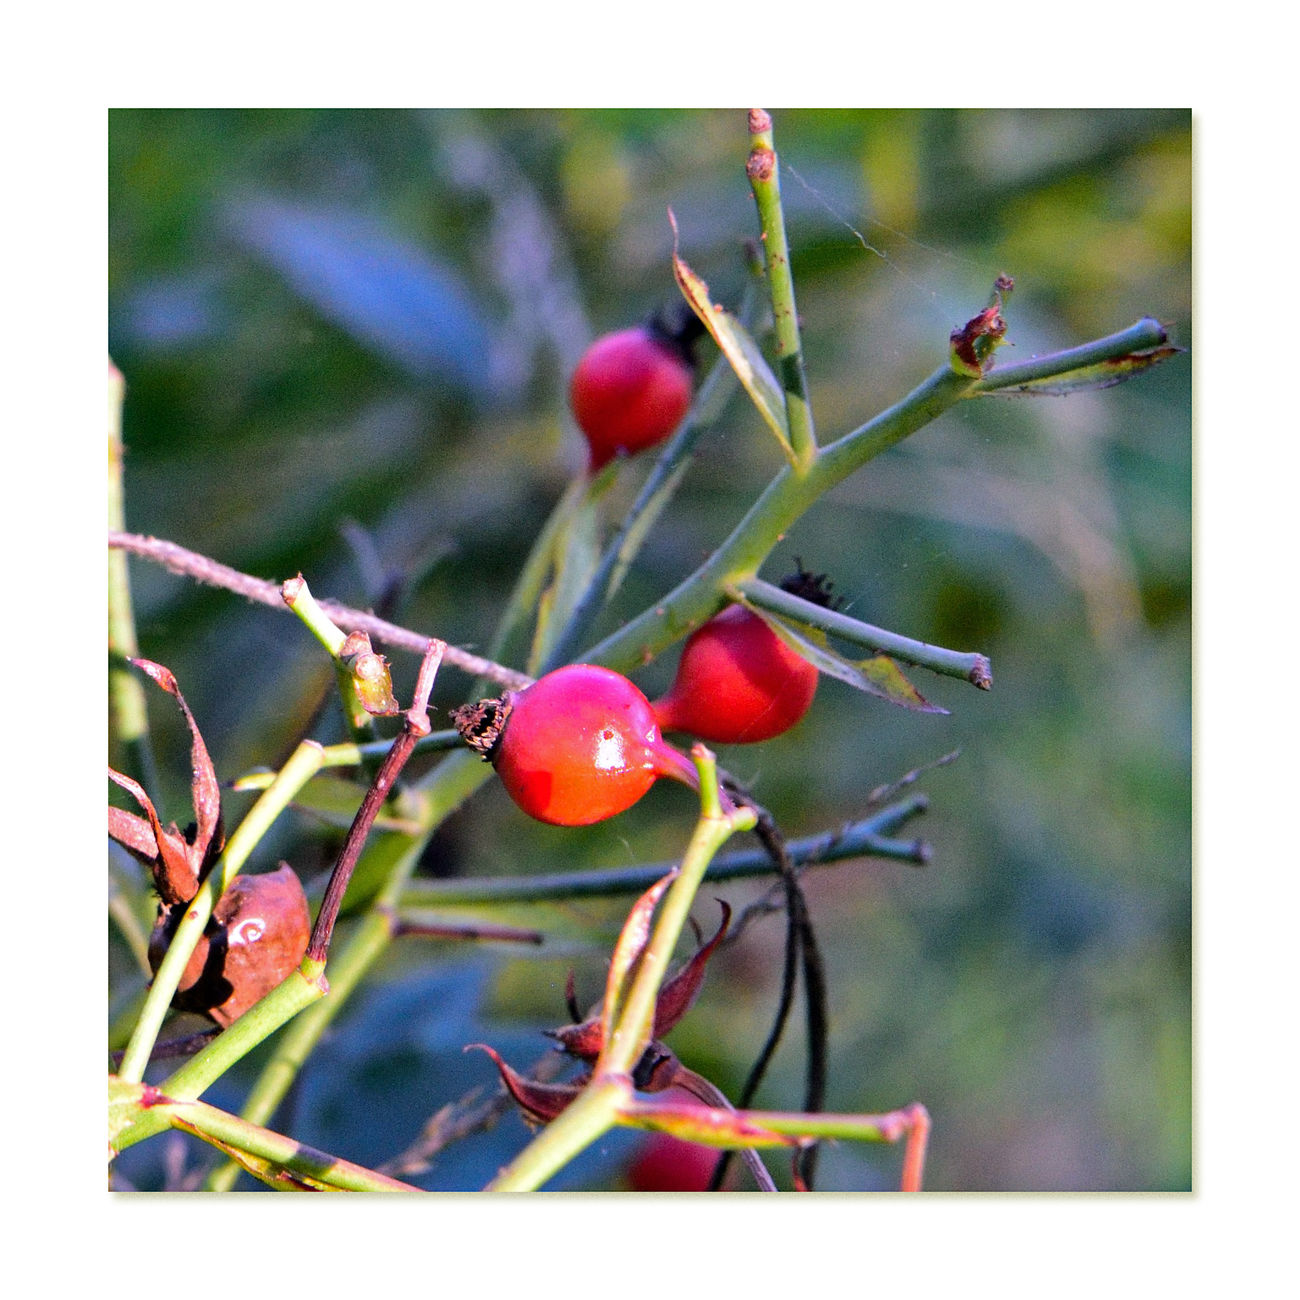 Rose Hips 2 Marcom Amphitheater Of Roses Oakland, CA Rose Haw Rose Hep Rose HipsNature Fruit Of Rose Plant Post Pollination Of Flowers Ripen Late Summer Through Autumn Botany Rich In Vitamin C Oils Are Used For Fragrances Carotenoids: Beta-carotene,lutein,zeazanthin,lycopene Itching Powder Made From Fine Hairs Inside Hips Used For Teas,jam,jelly,syrup,soup,wine,beverages Beauty In Nature Healthy Eating Fruit Food